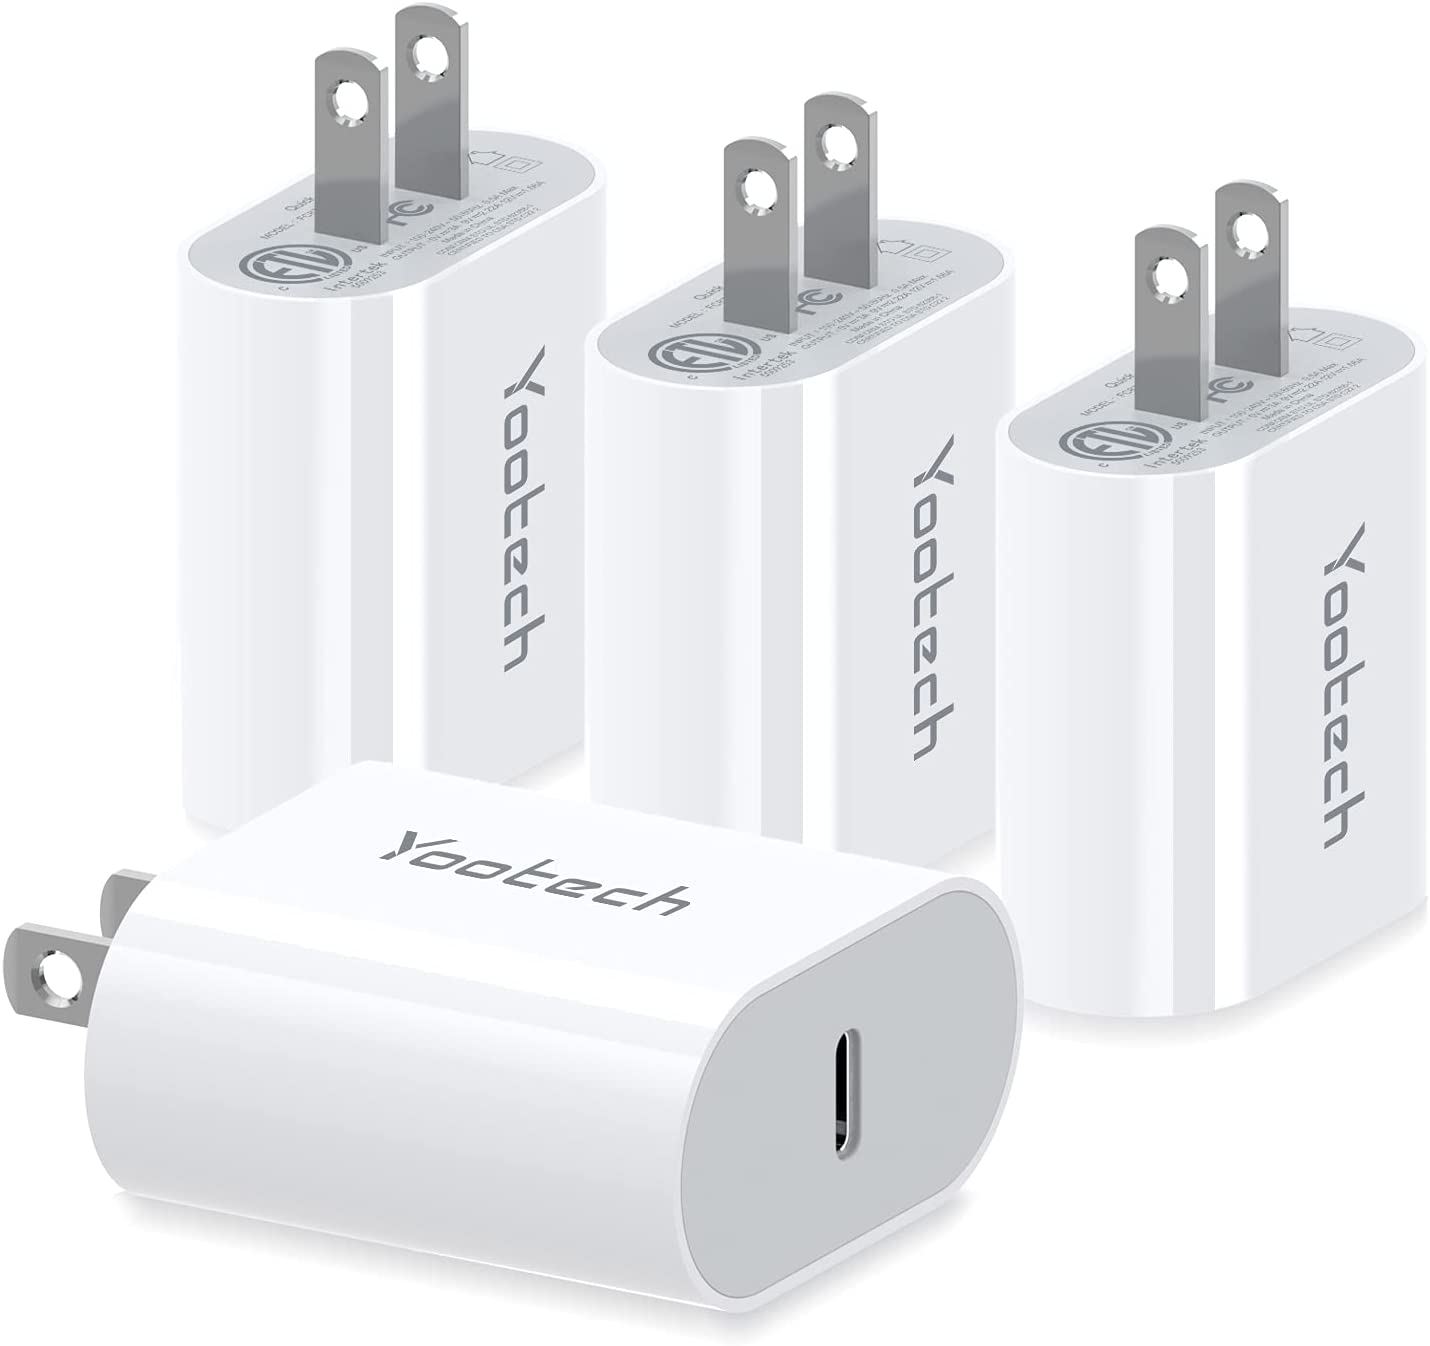 USB C Fast Charger, Yootech [4 Pack] 20W USB C PD Wall Charger, Fast Charger Adapter Compatible with iPhone 12/12 Mini/12 Pro Max/SE/11 Pro Max, Samsung Galaxy S10/S9, Pixel 5/4/3(Cable Not Included)